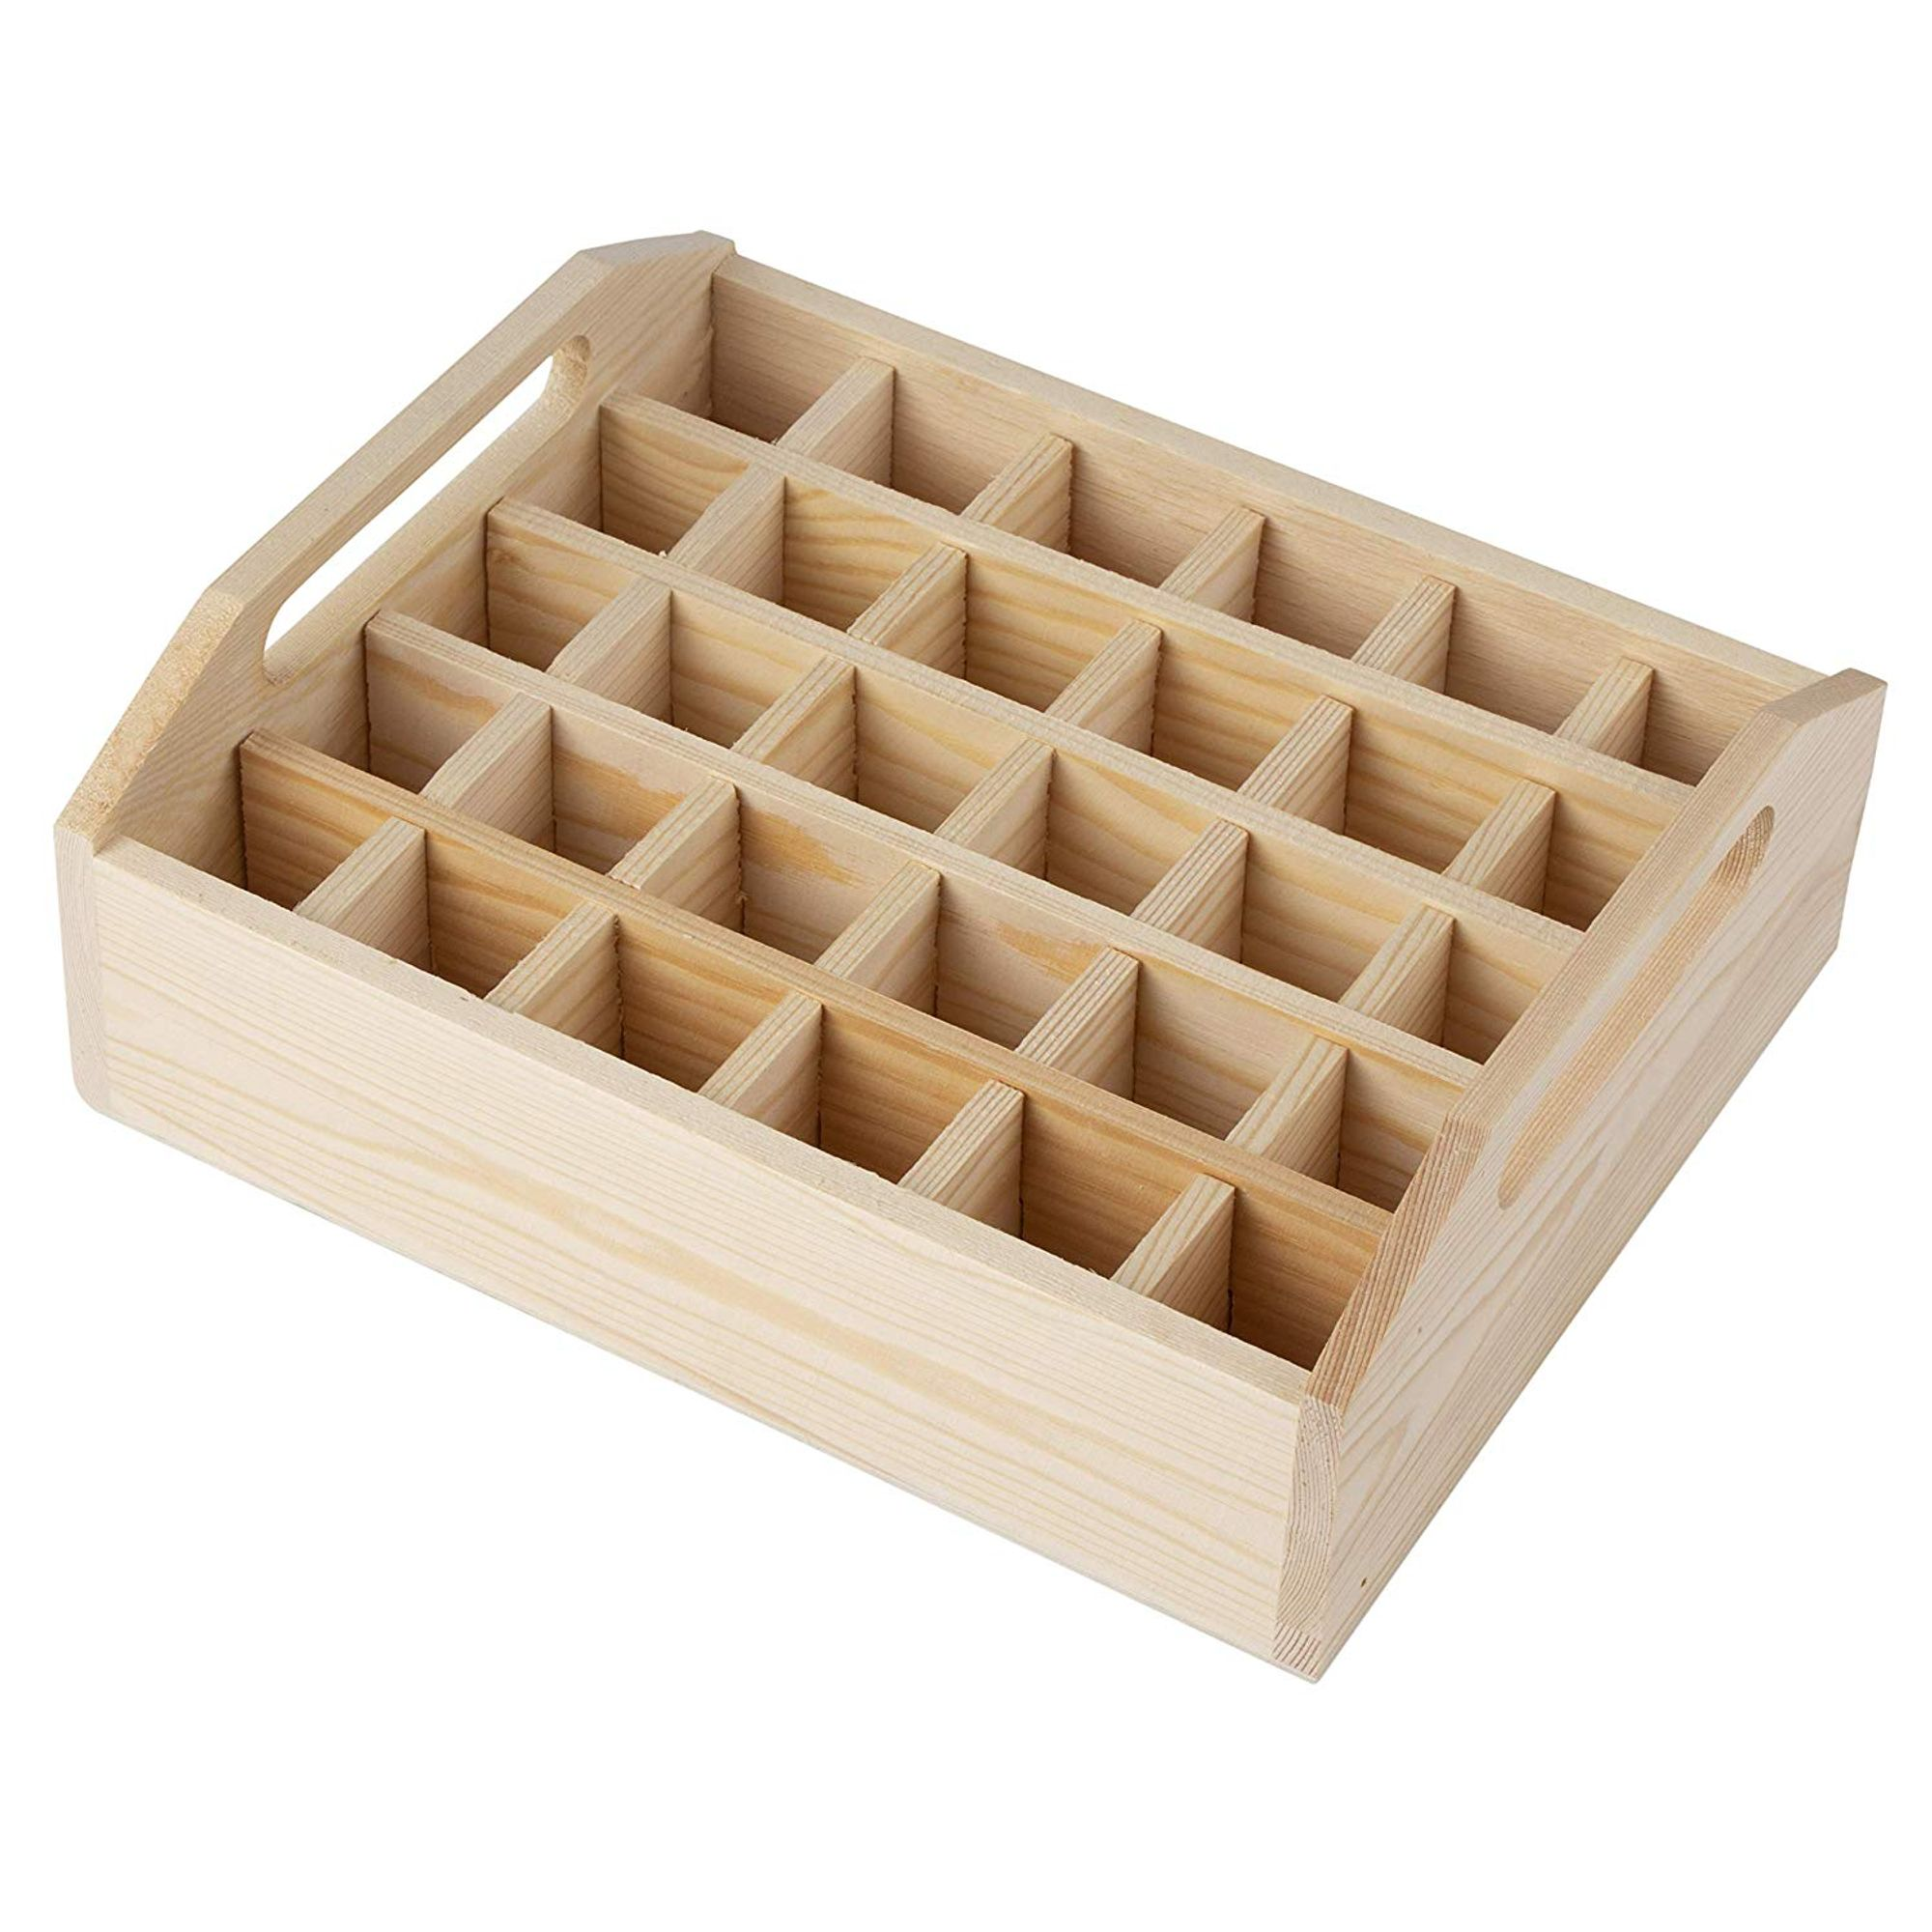 6//9 Compartment Organizer Storage Wooden Tray Unpaited Storage Box Containers